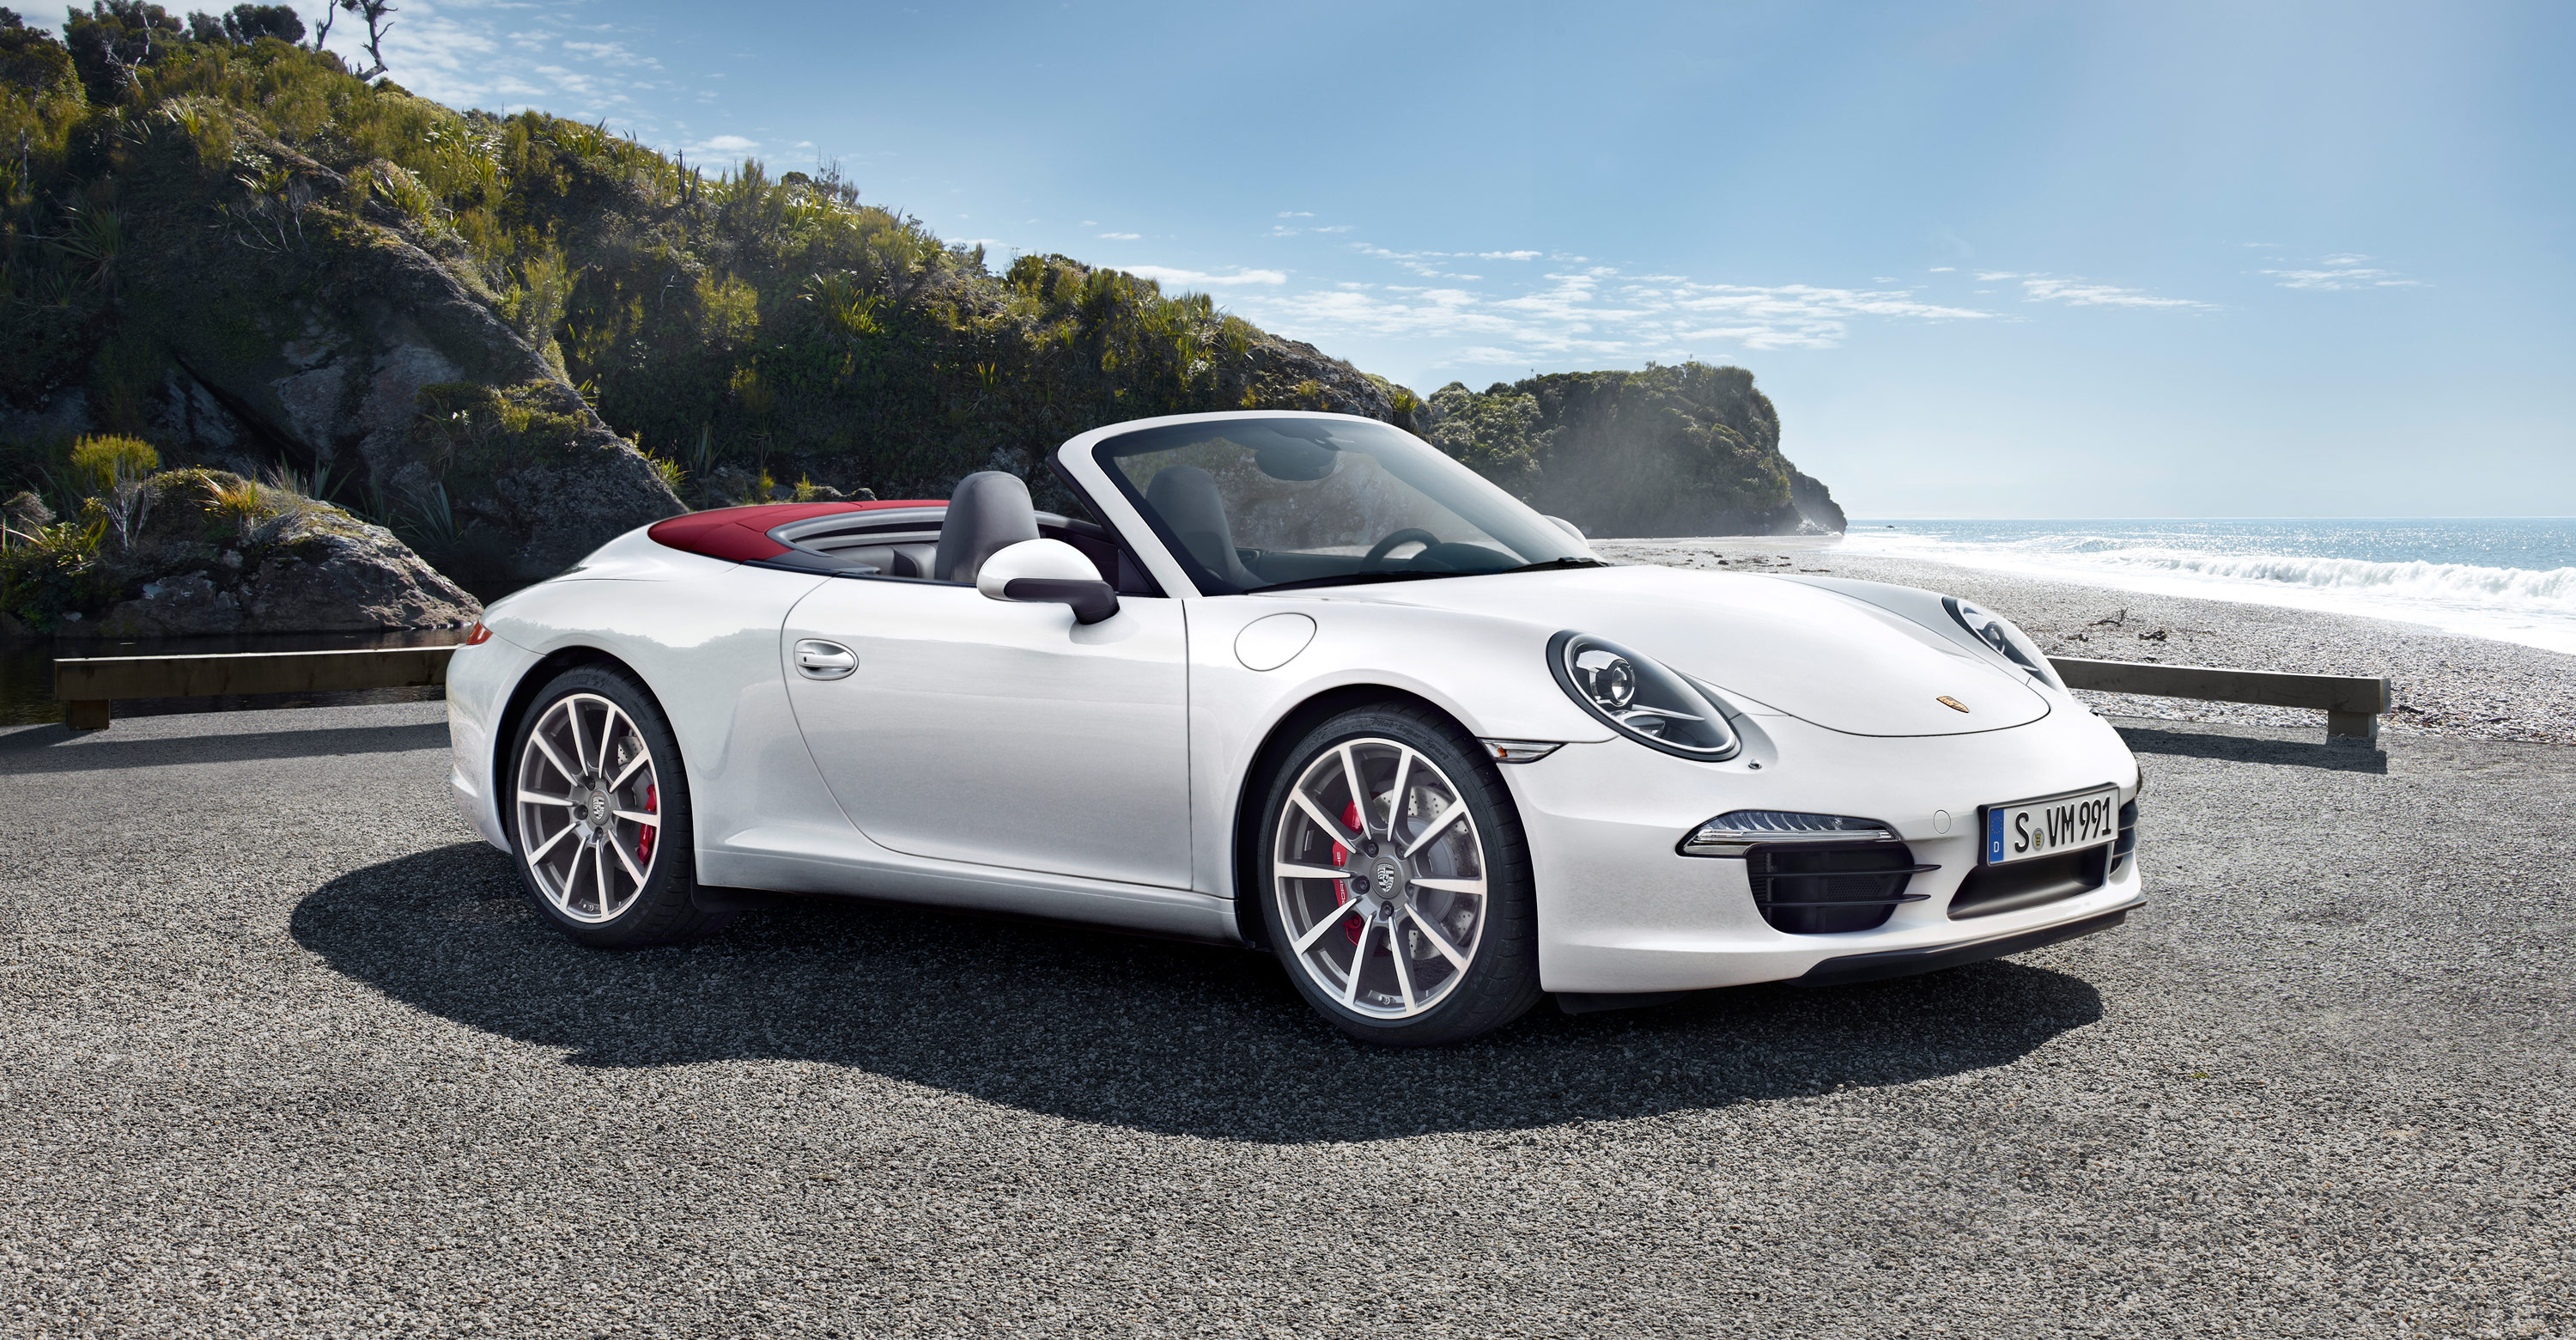 2012 Porsche 911 Carrera S Cabriolet - Front angle side view